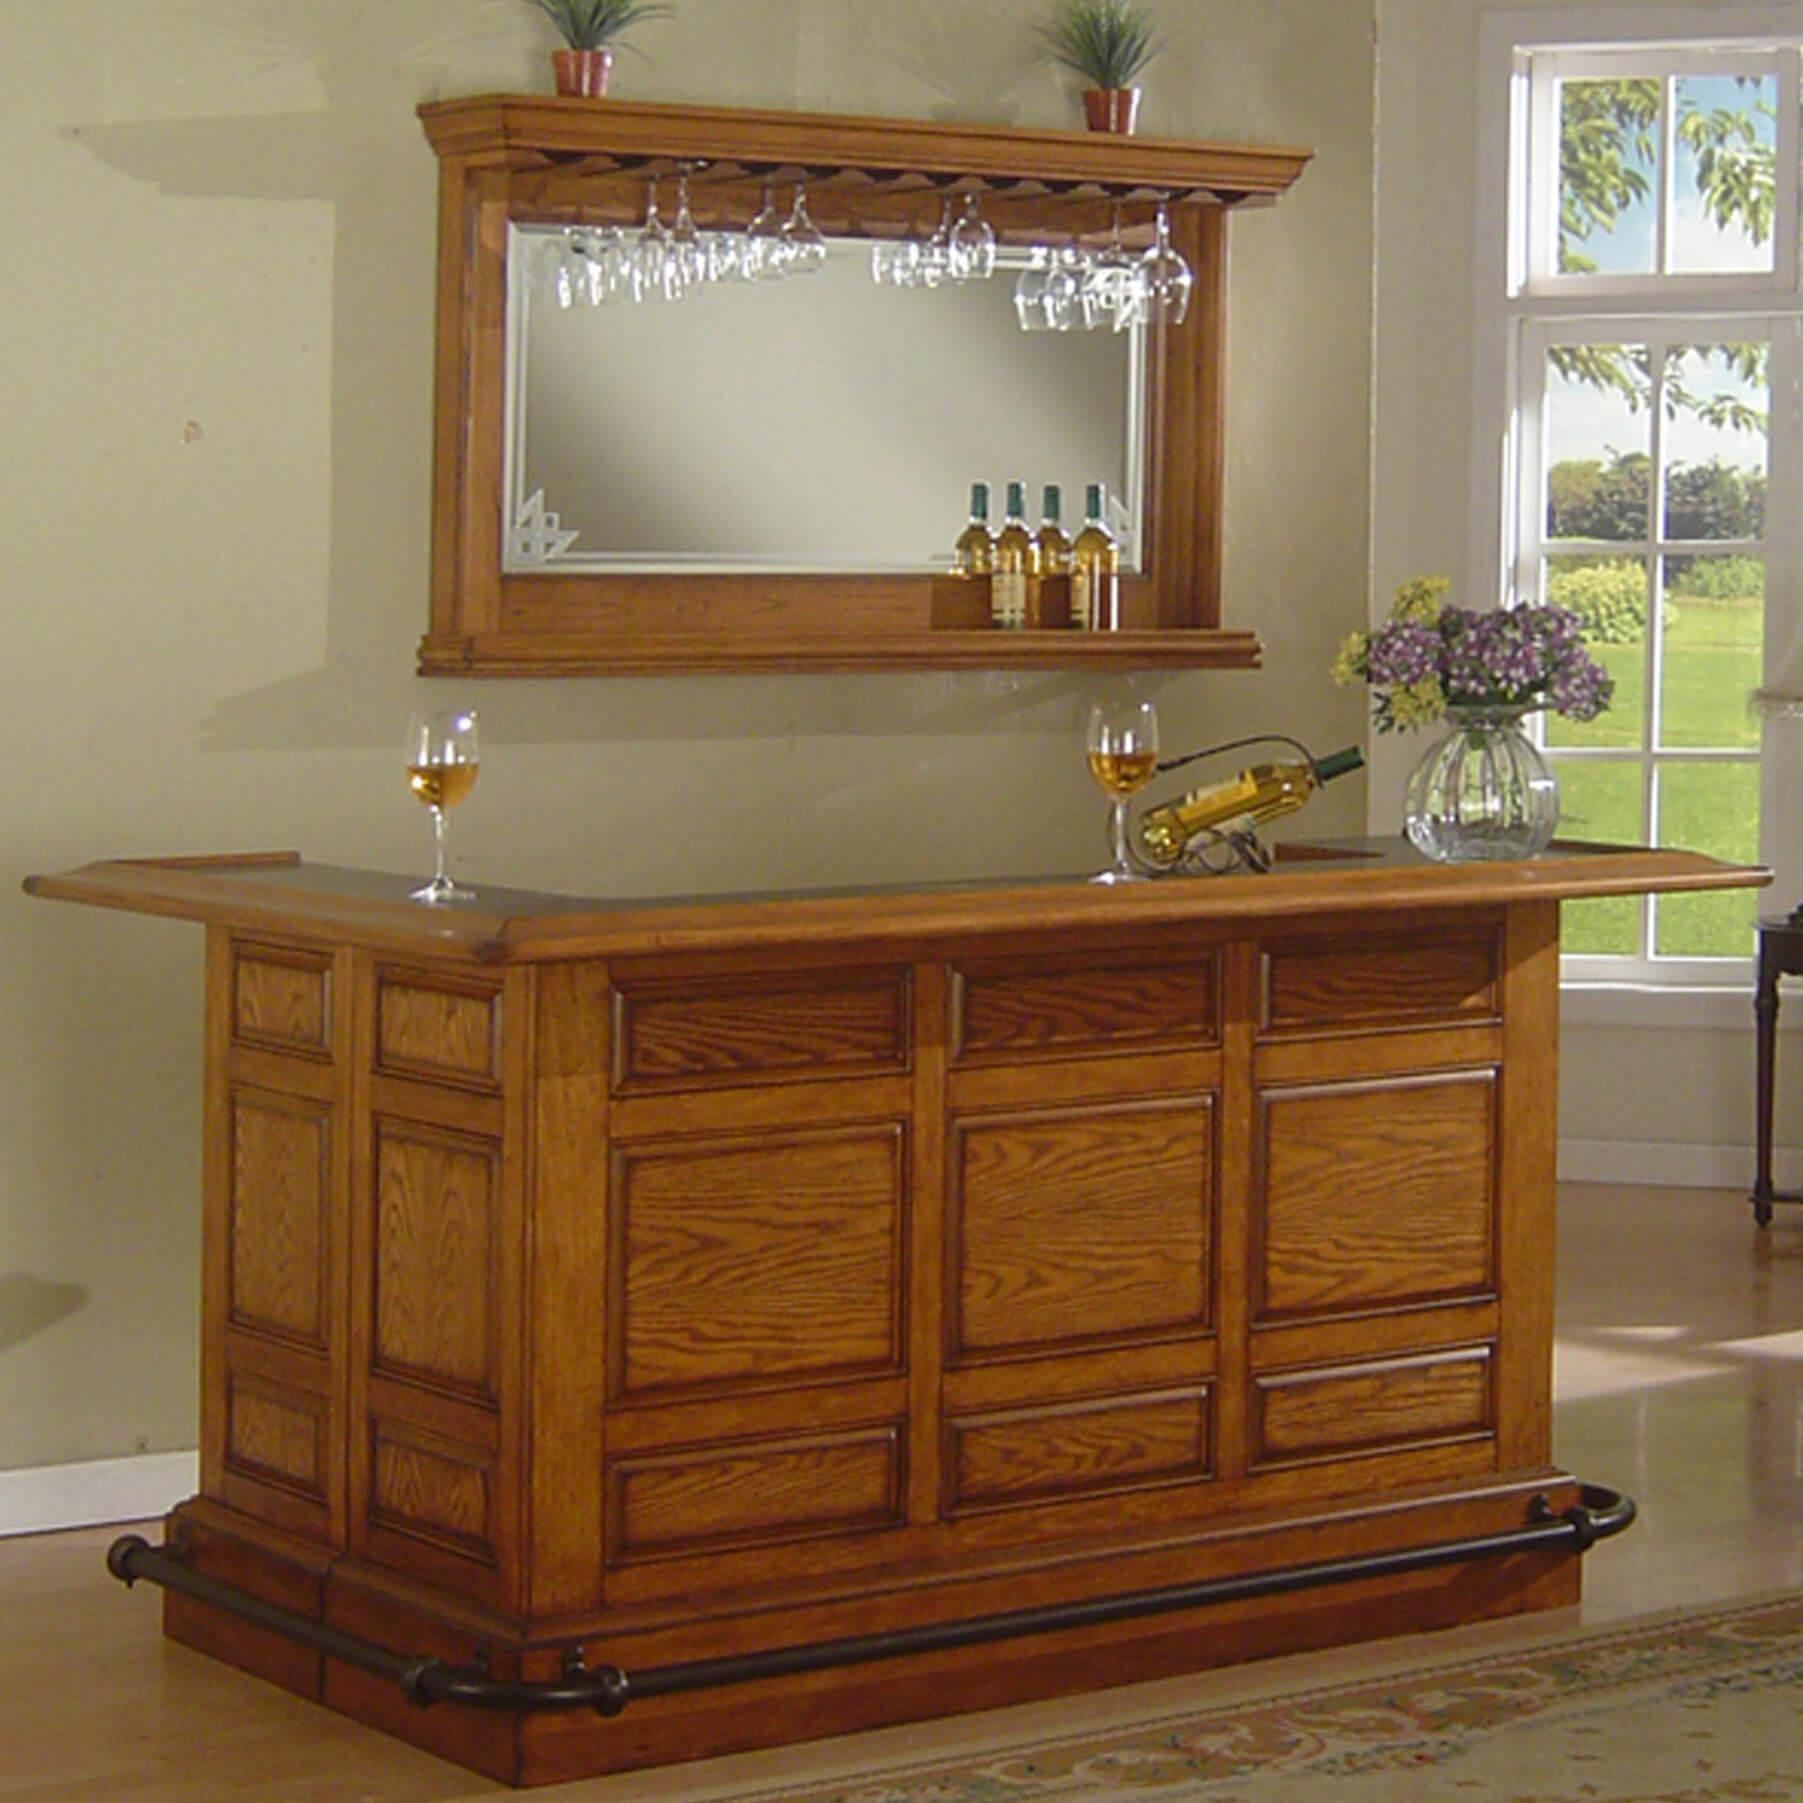 Lovely Solid Wood Home Bar With Wrap Around Counter.